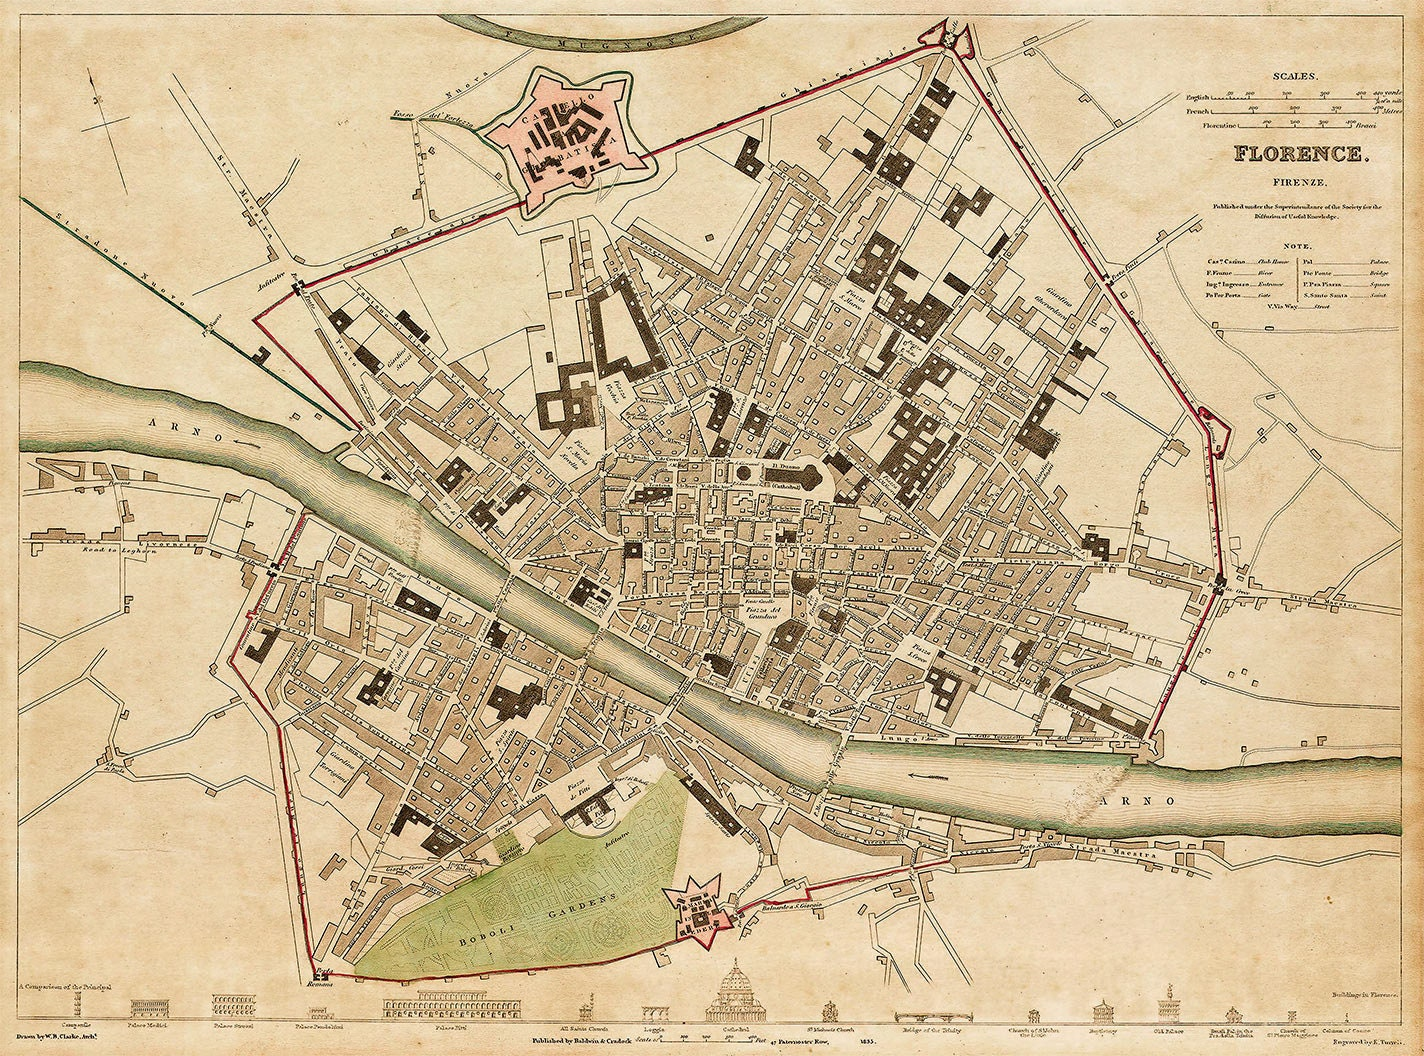 Old map of Florence Italy 1835 Florence map Vintage Map of Firenze ...